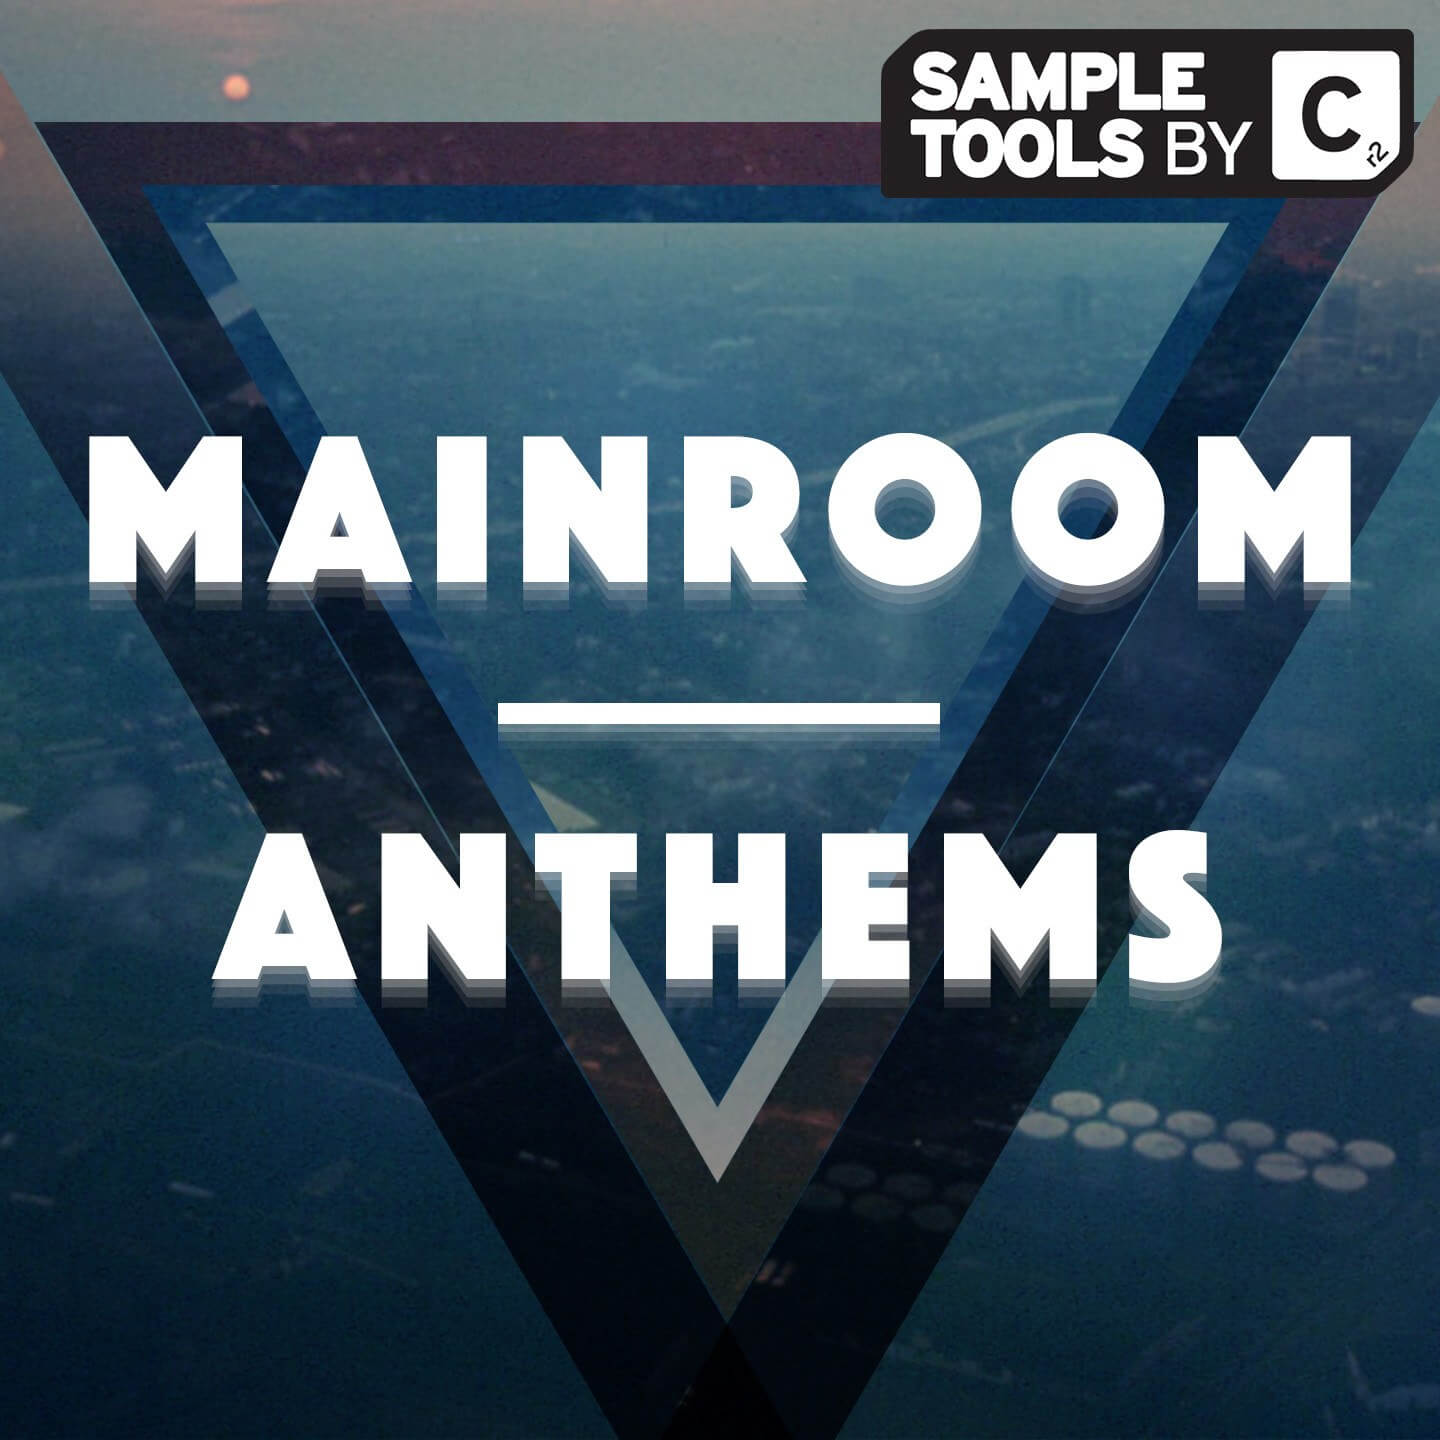 Mainroom Anthems sample pack by Sample Tools by Cr2